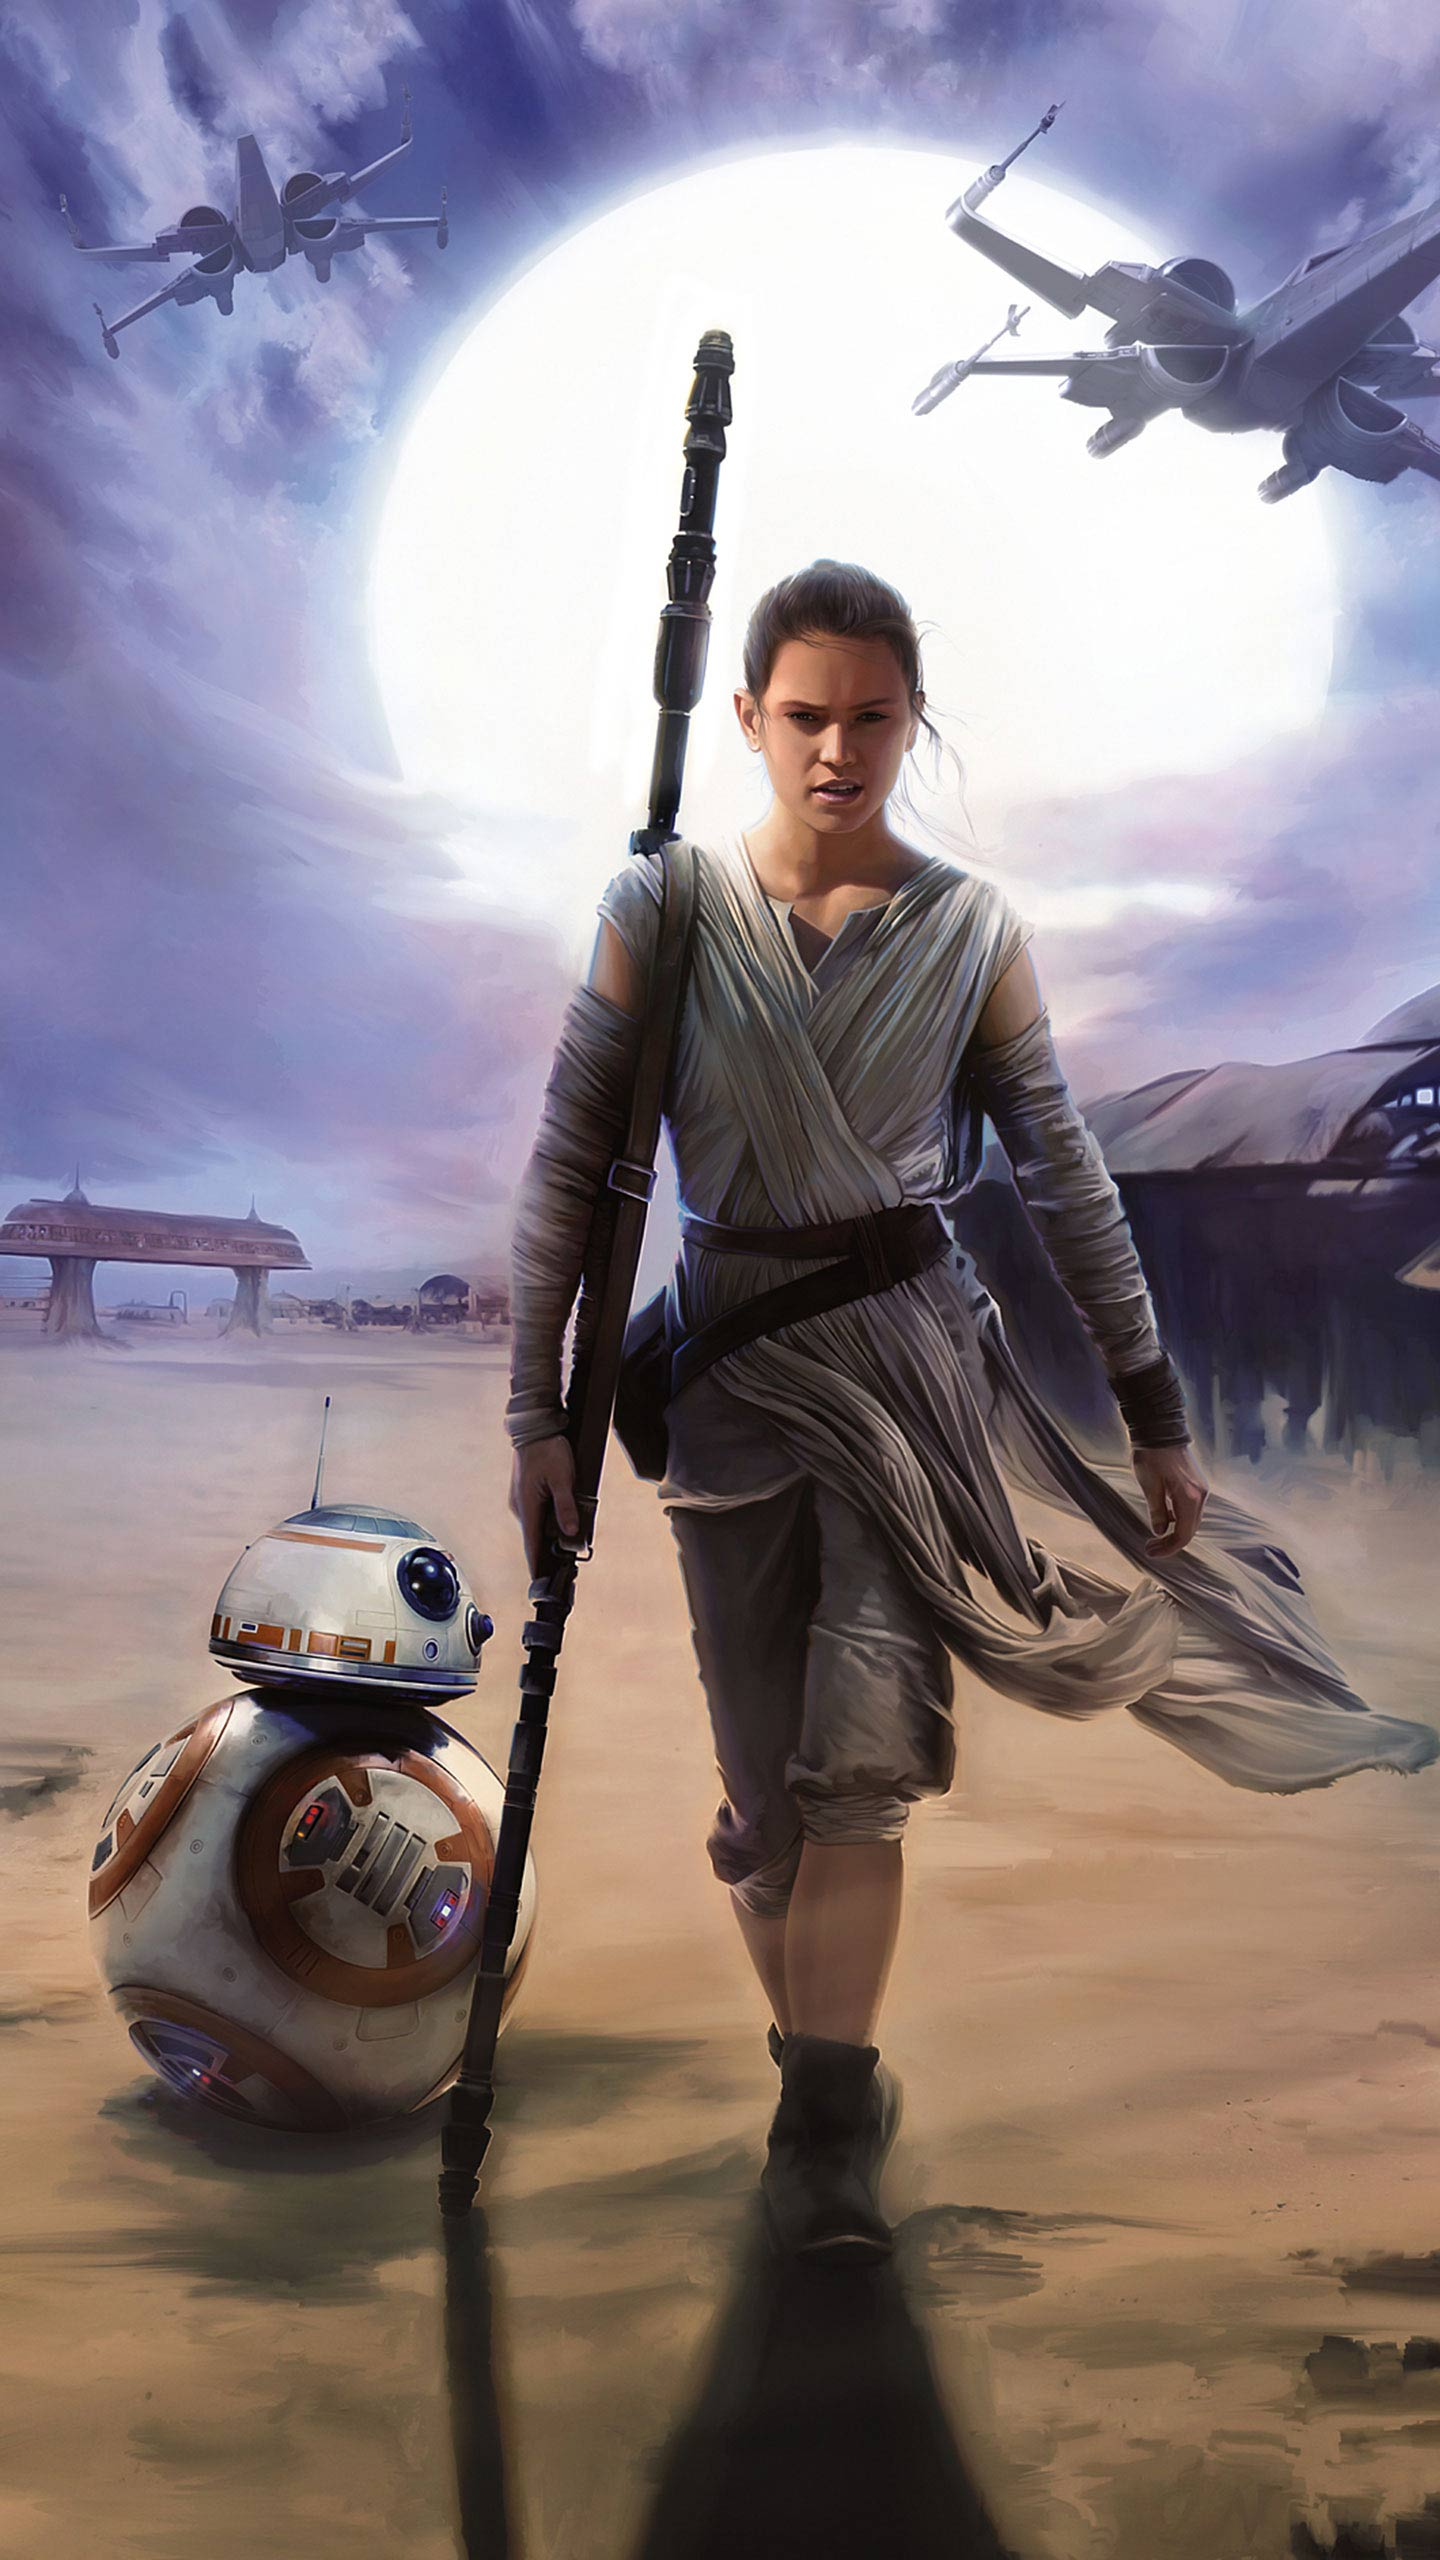 Star Wars Rey Hd Mobile Wallpapers Wallpaper Cave